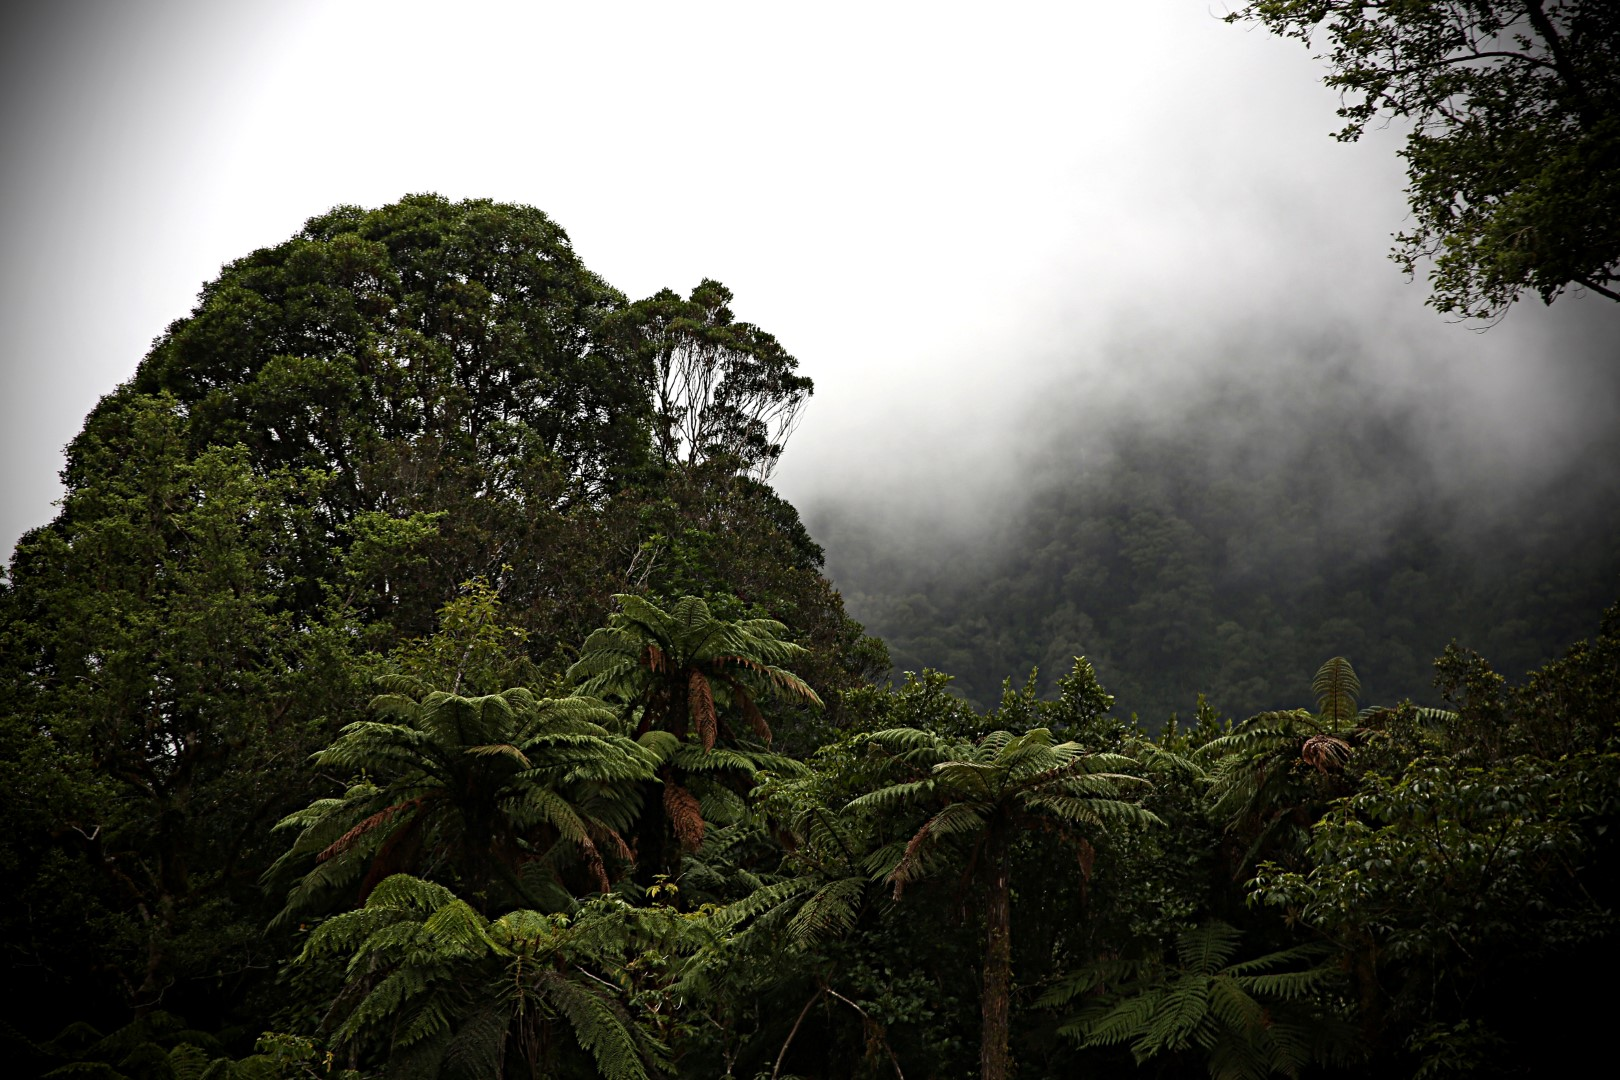 Tai poutini national park (Large).jpg